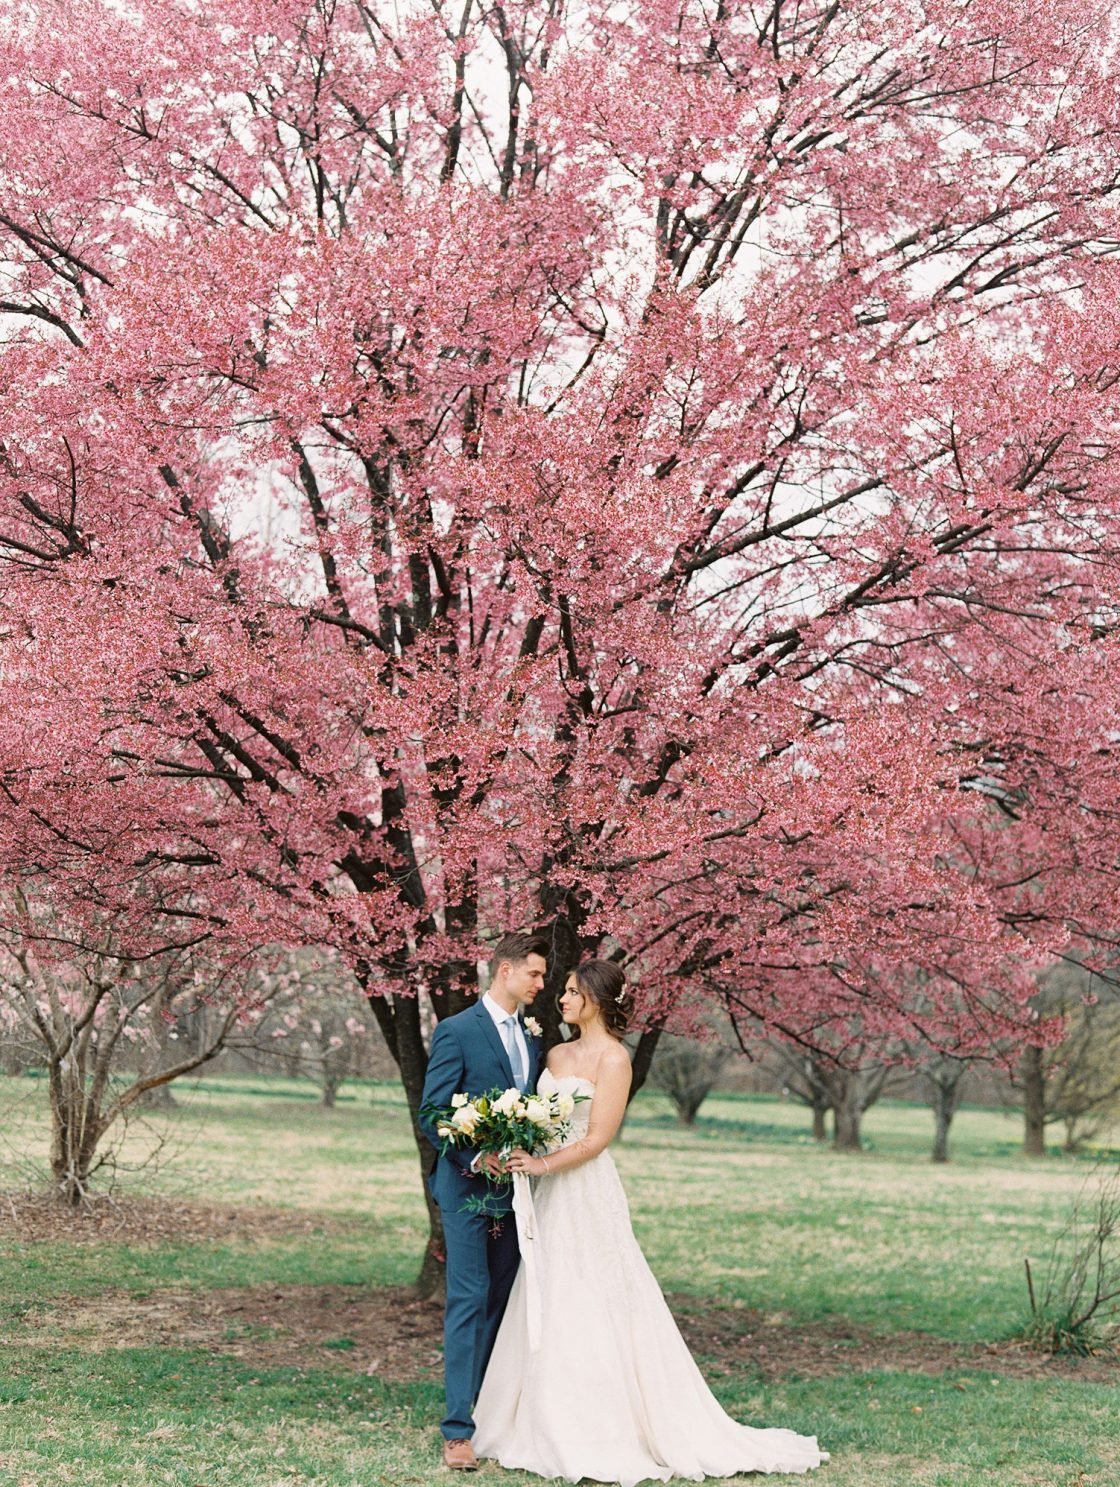 Springtime Outdoor Wedding Portraits